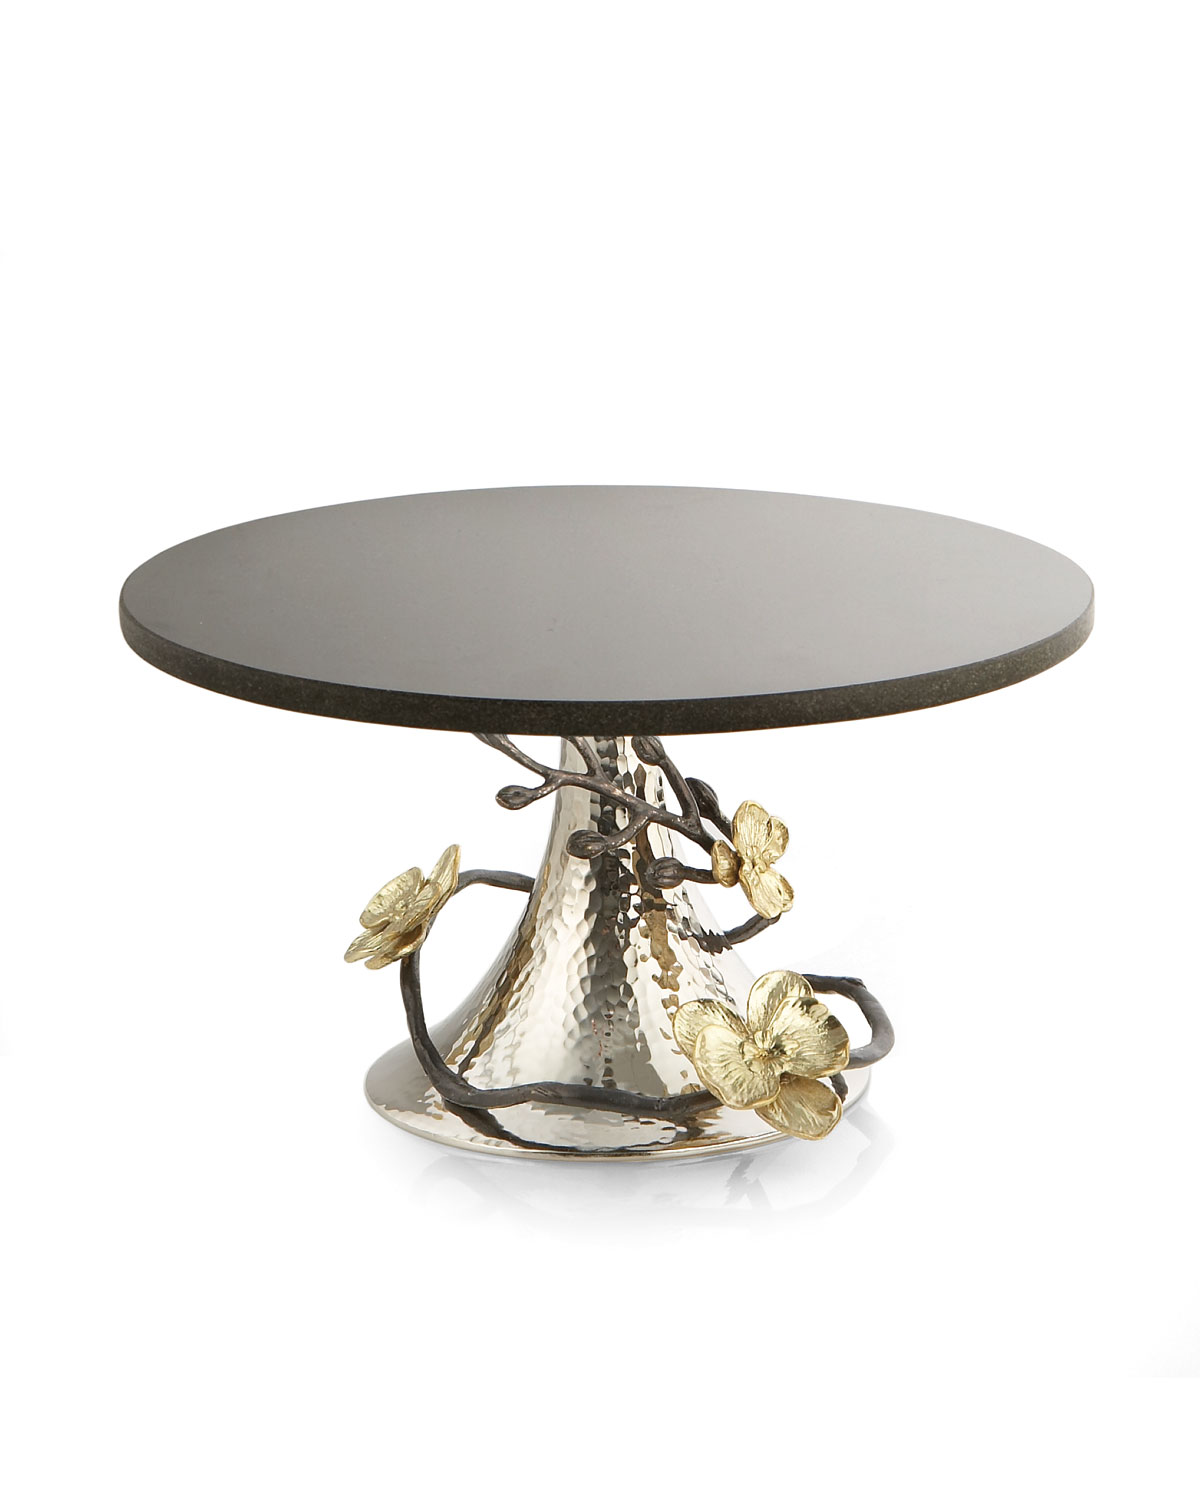 Michael Aram Clothing GOLD ORCHID CAKE STAND